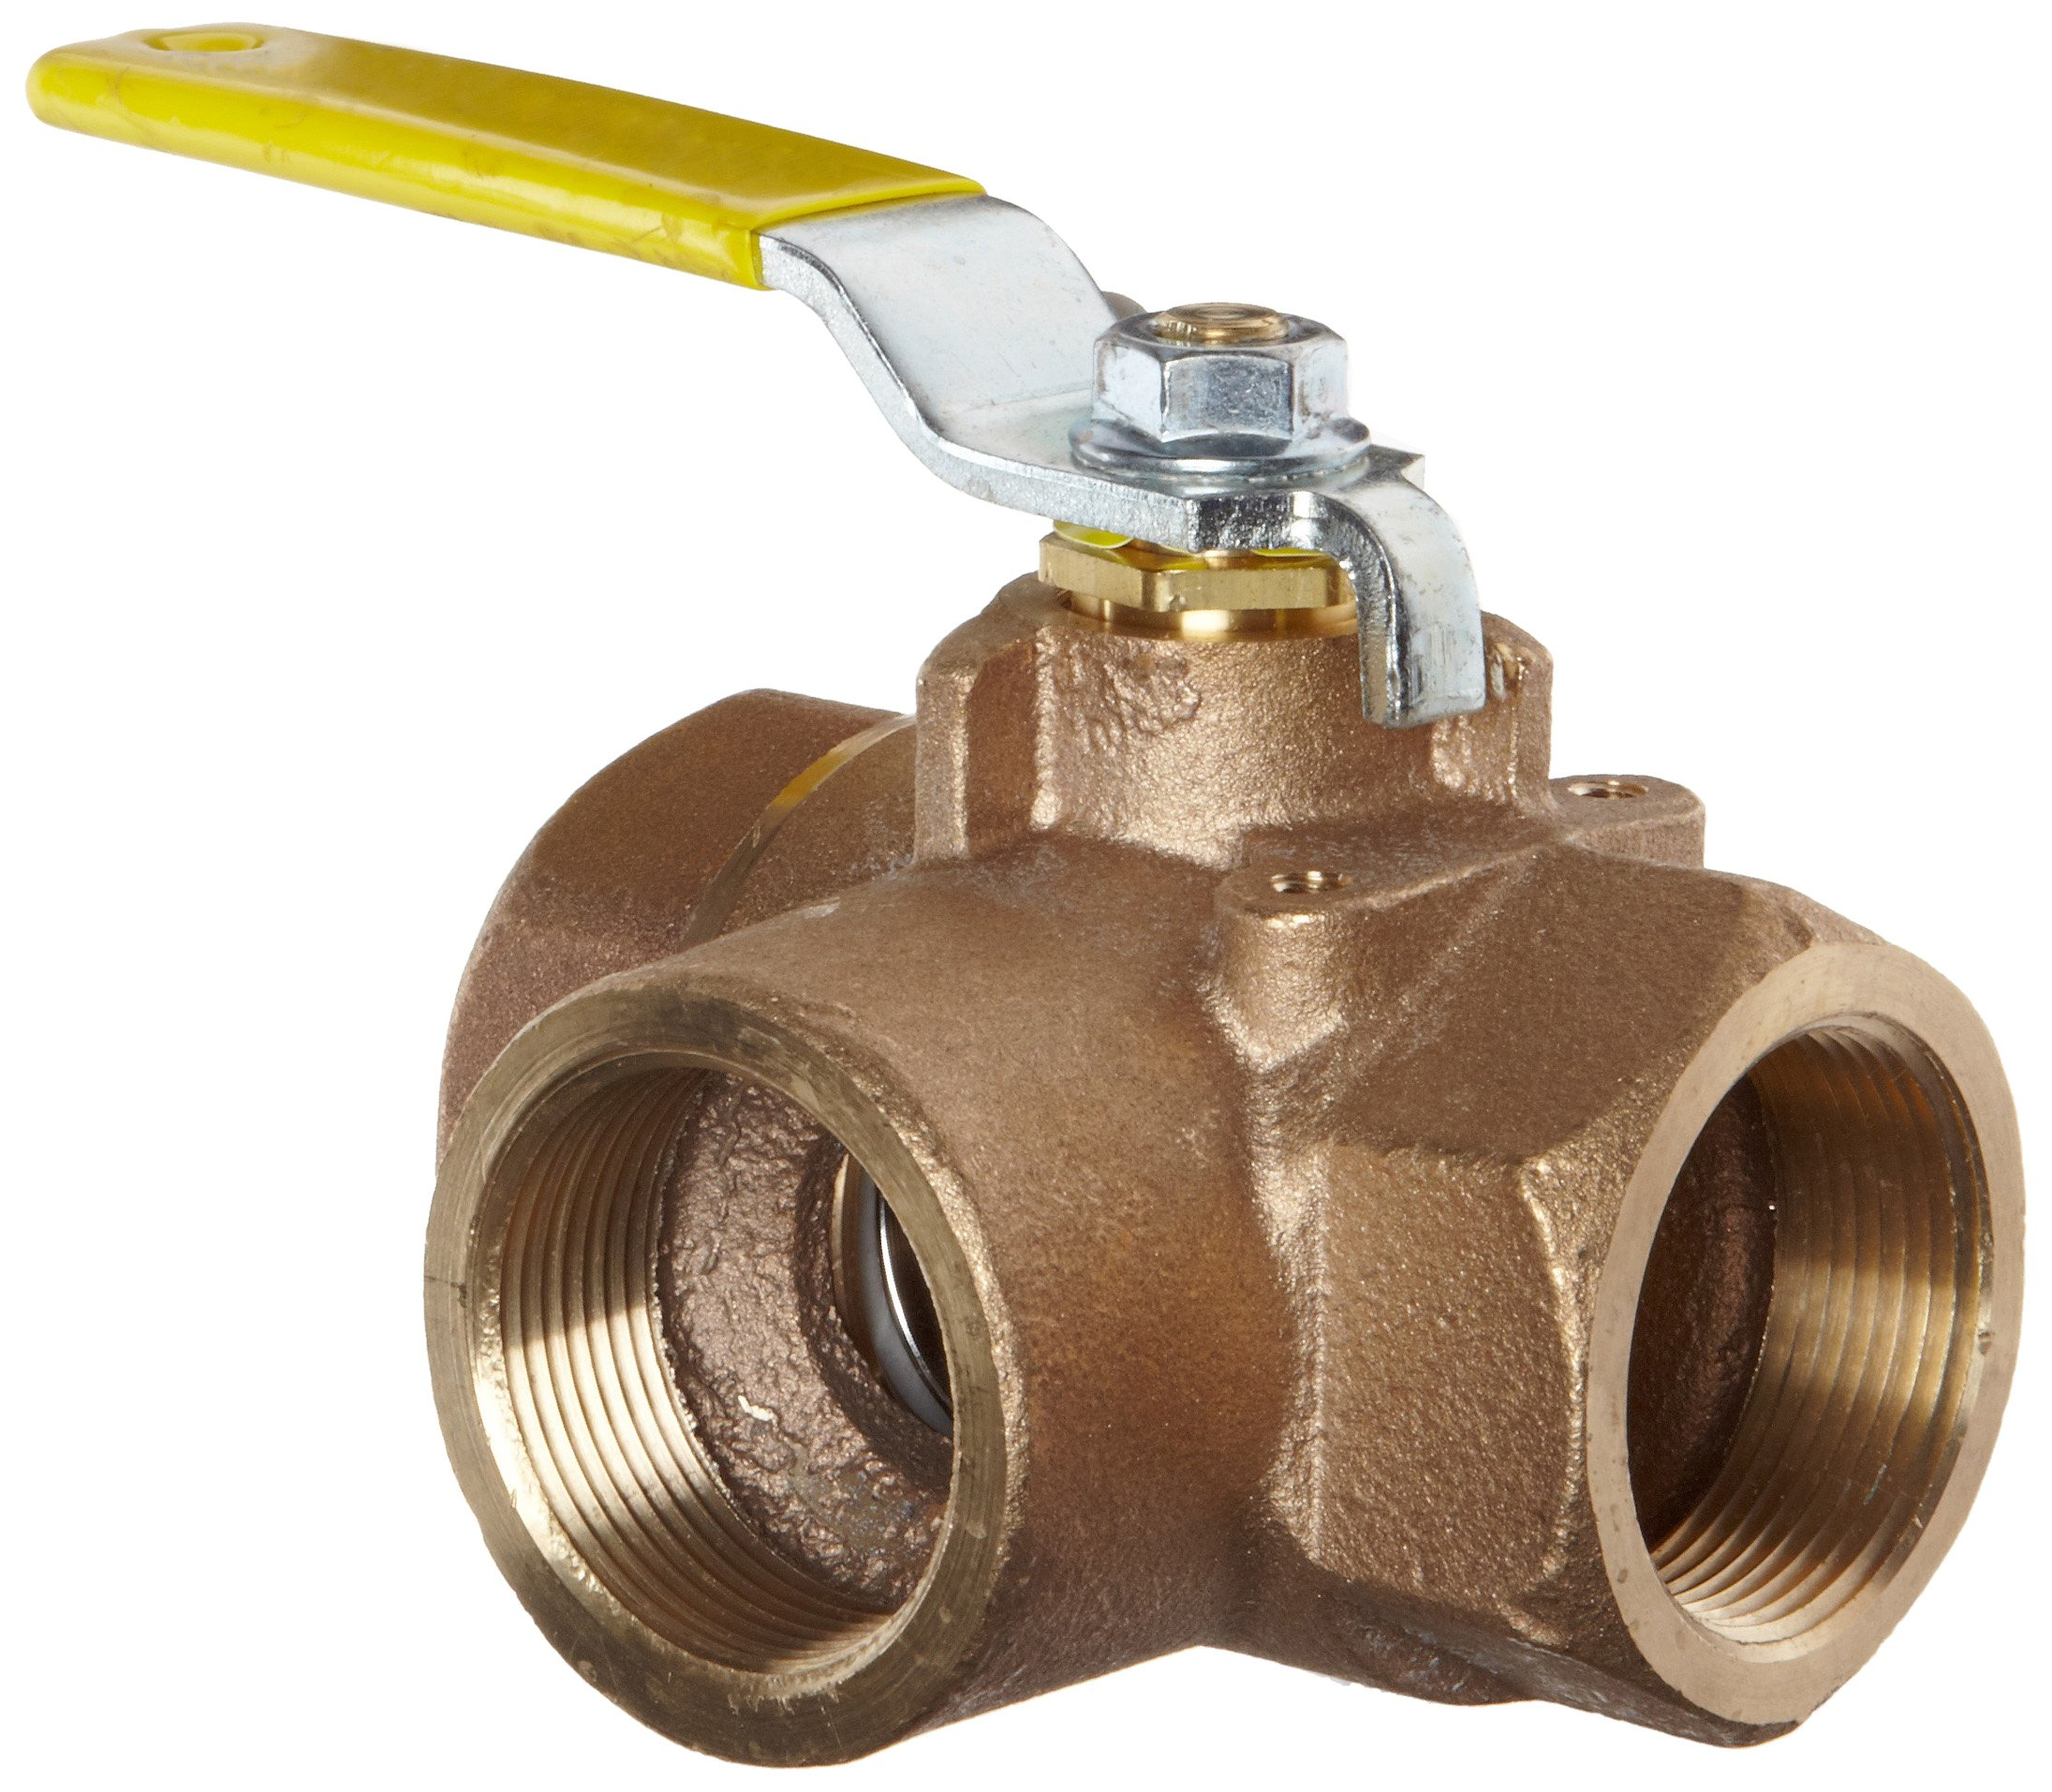 Apollo 70-600 Series Bronze Ball Valve, Two Piece, 3-Port Diverting, Lever, 1'' NPT Female